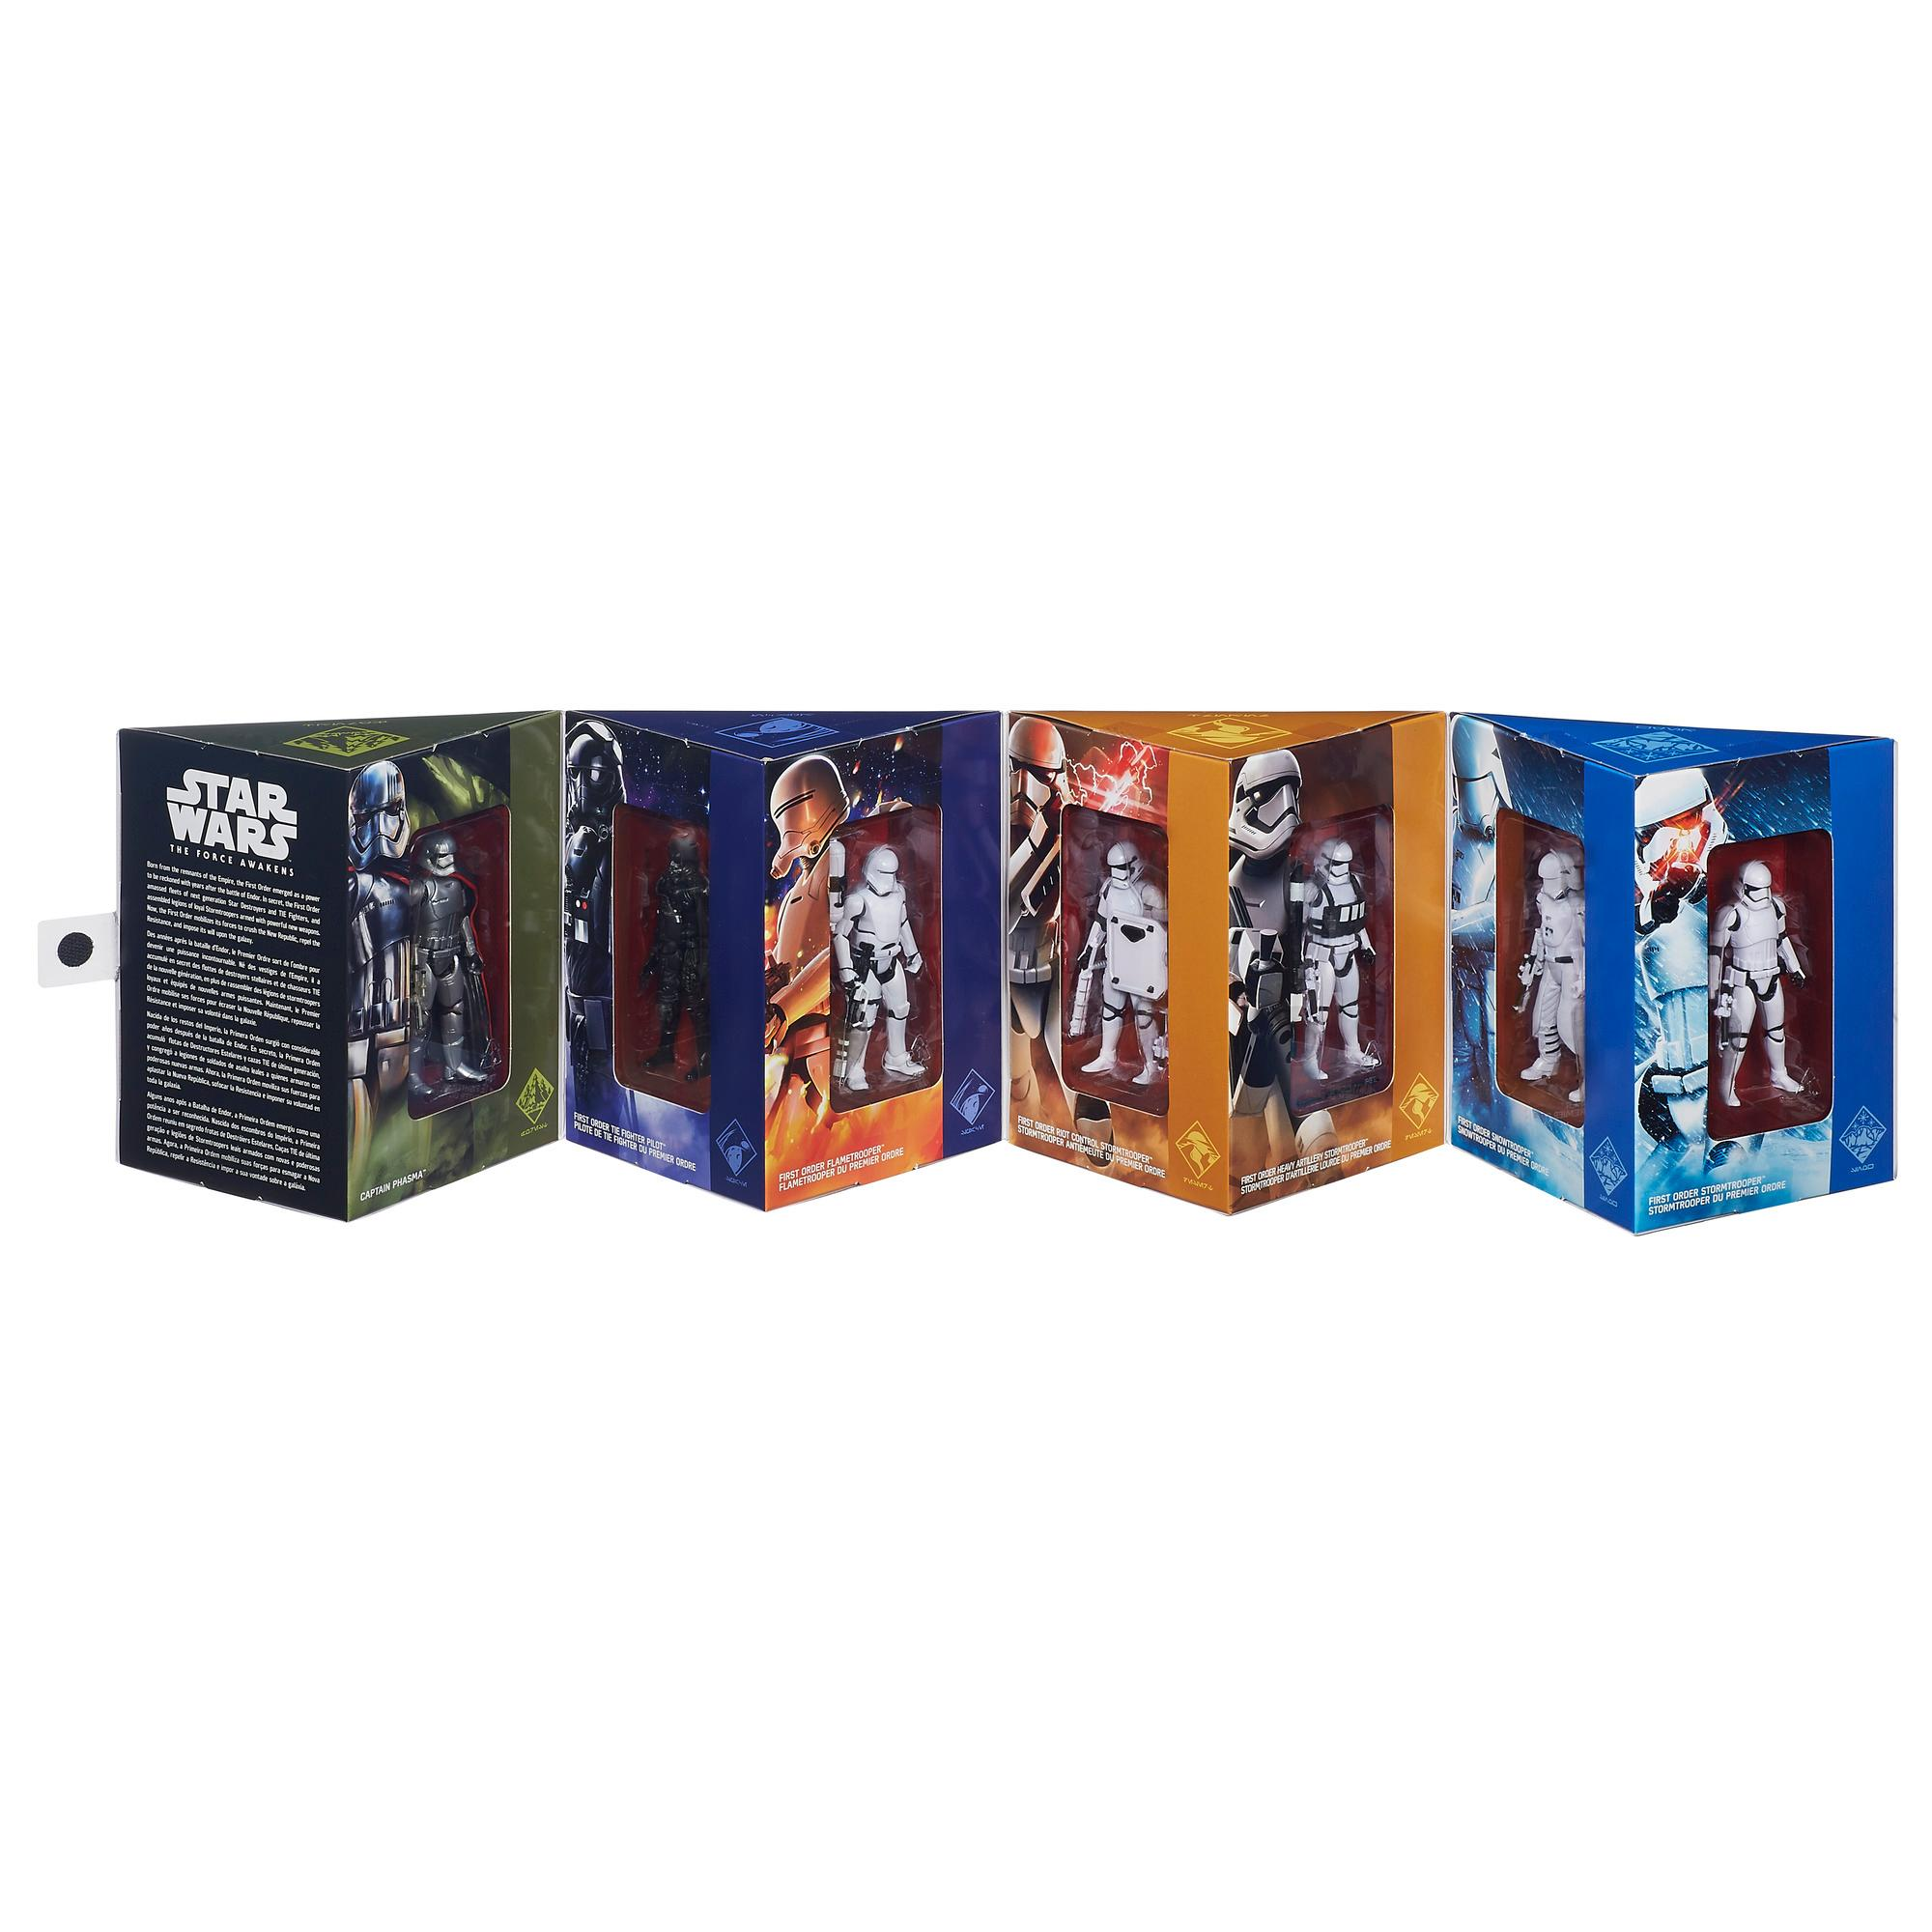 Star Wars The Force Awakens 375 Inch Figure Troop Builderpack